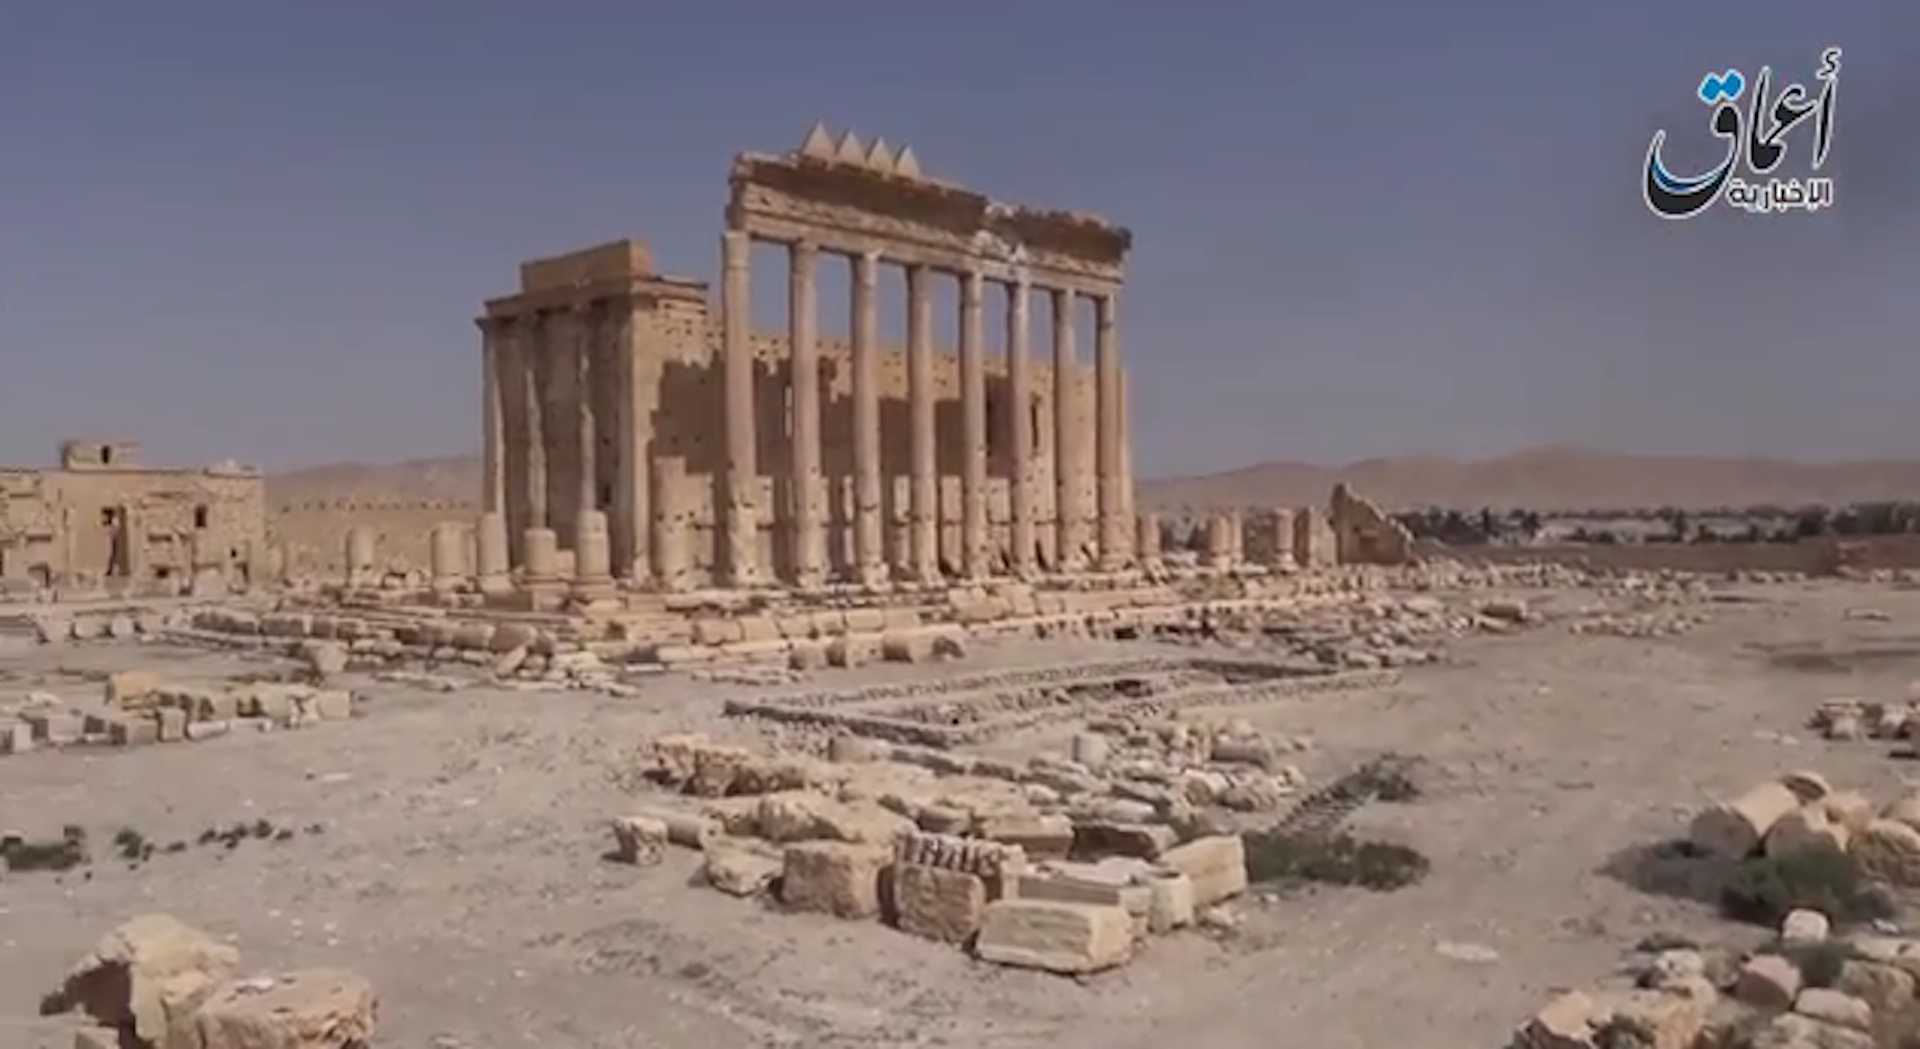 Islamic State video purports to show Palmyra ruins untouched